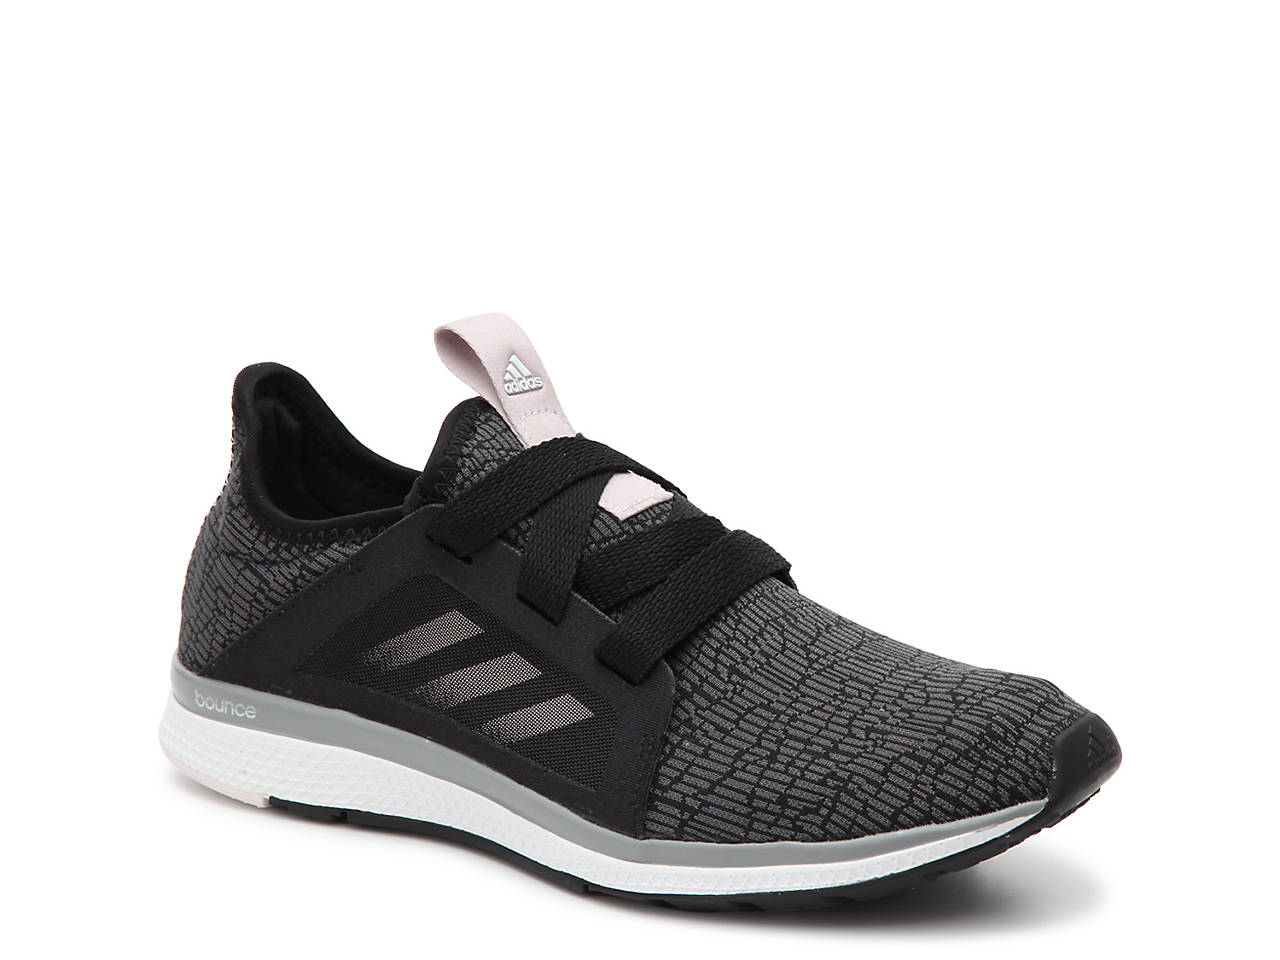 e7fa09d72 adidas Edge Lux Lightweight Running Shoe - Women s Women s Shoes